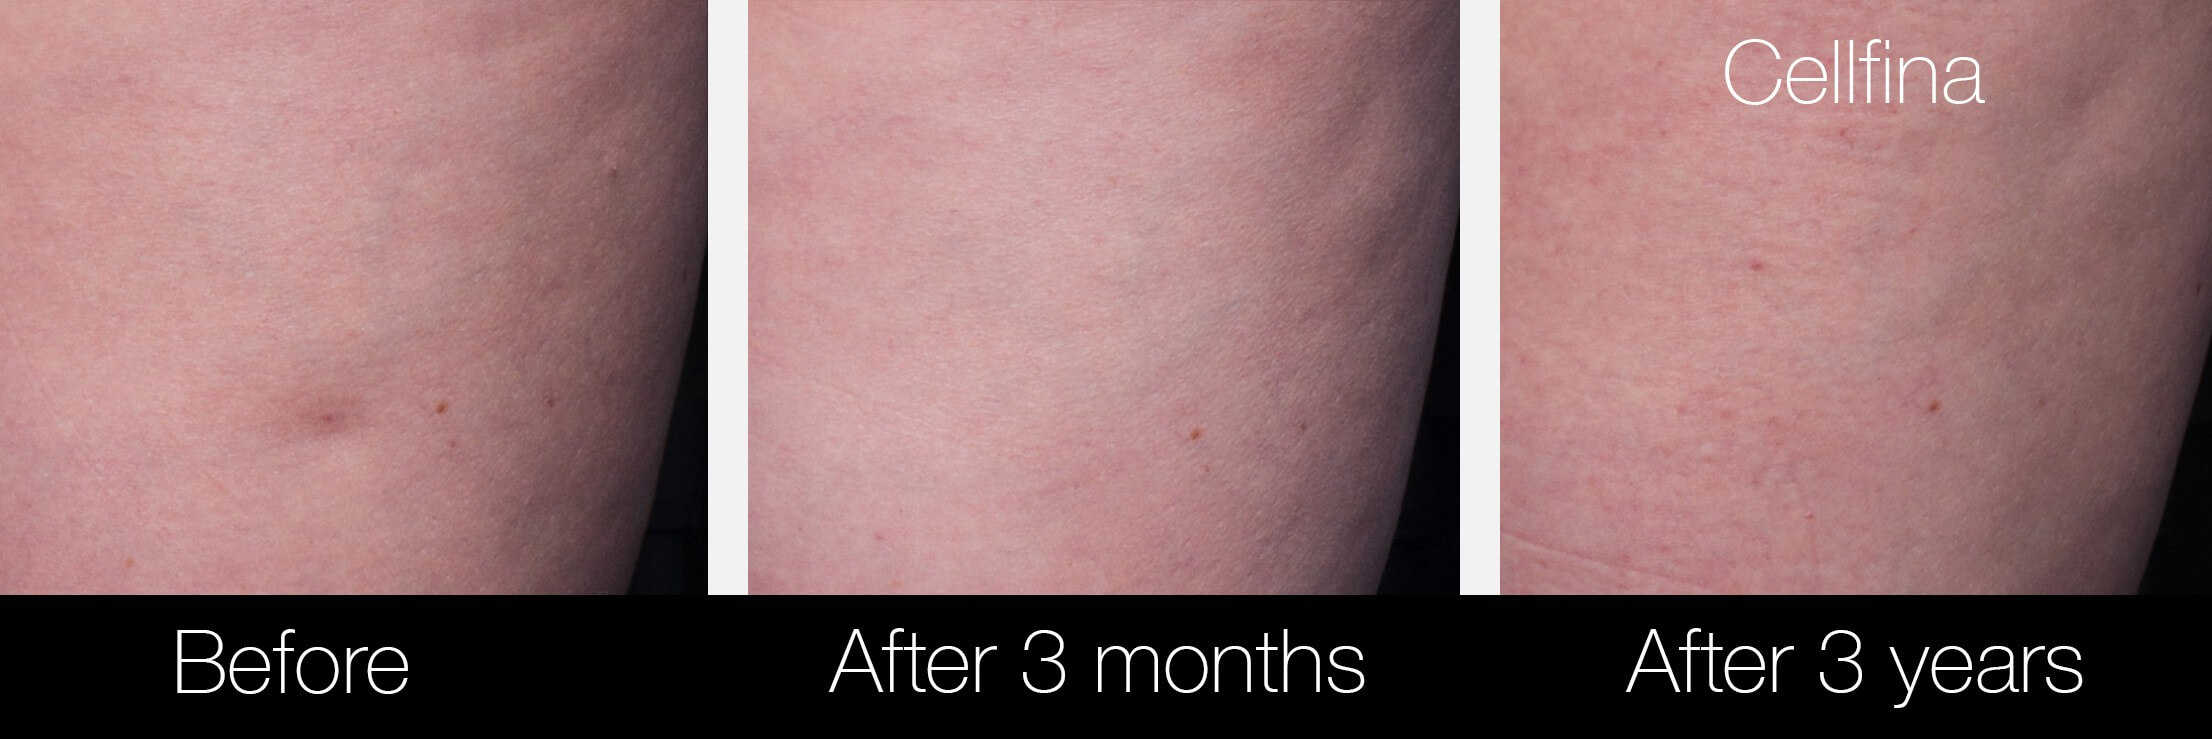 Cellfina Cellulite Treatment - Before and After Gallery – Photo 11